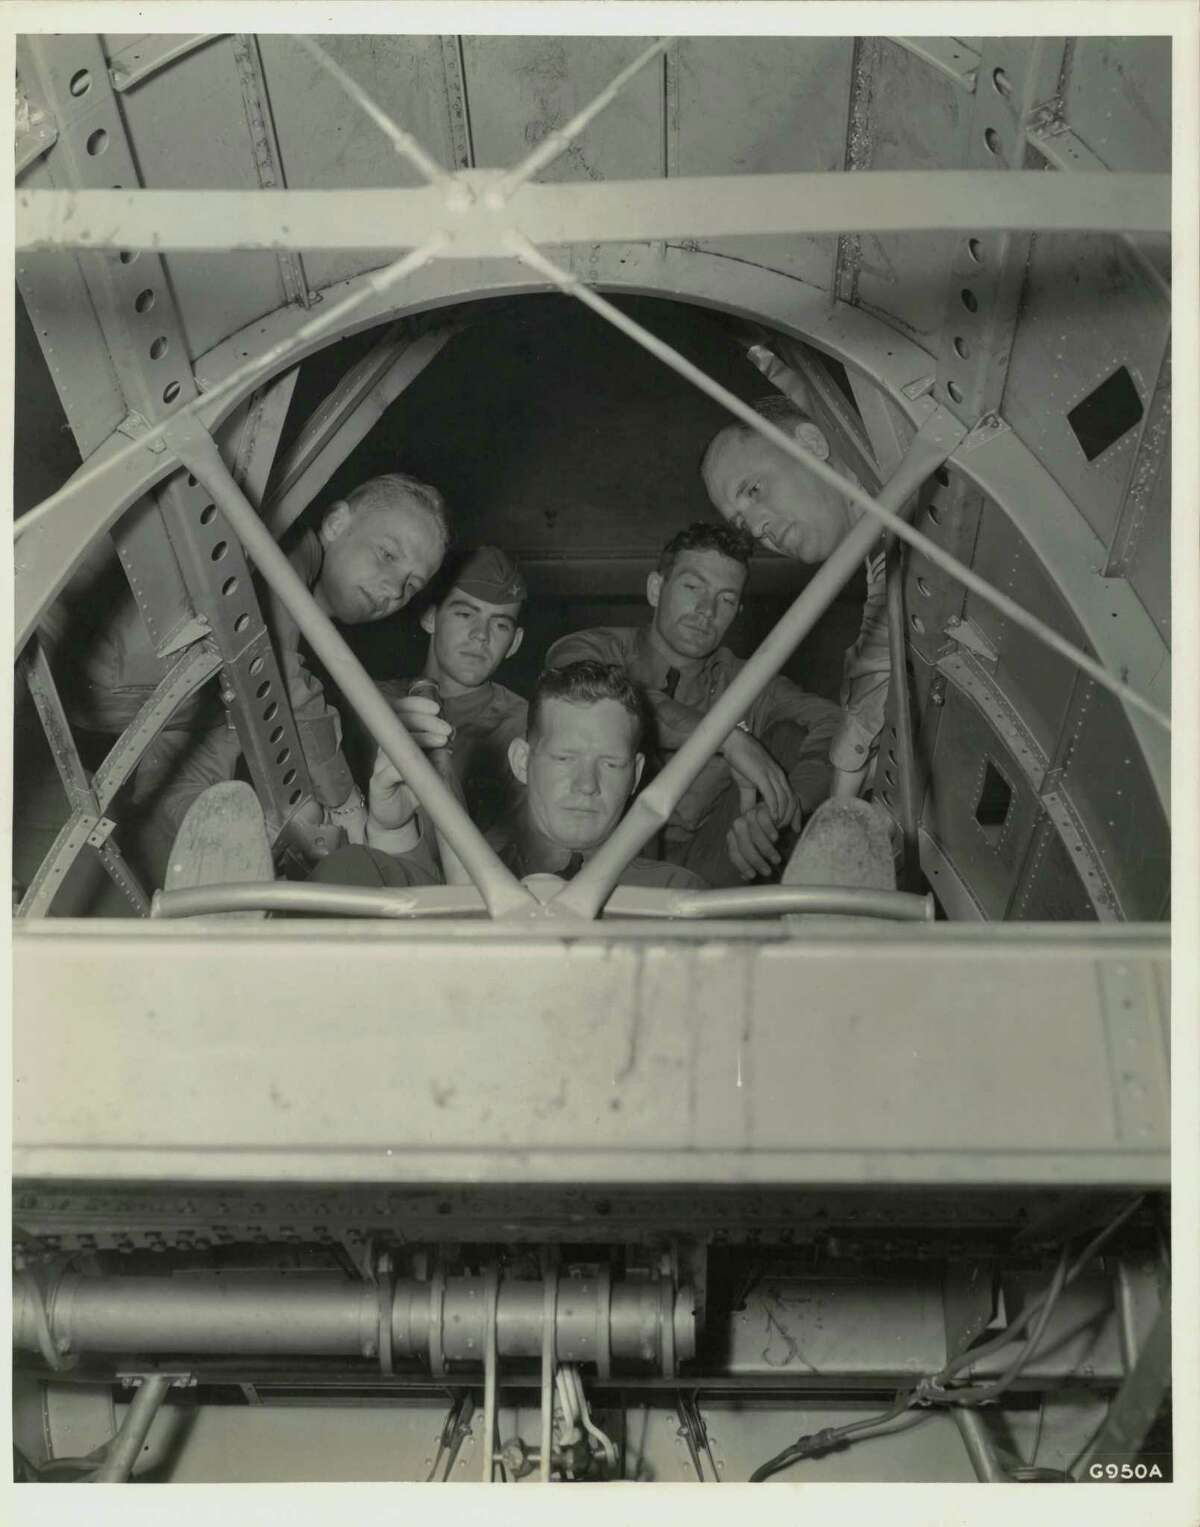 From the bomb bay looking up -- Inside a full scale cutaway model of a giant twin motored plane, used at Randolph Field, Texas, for ground instruction, a group of Flying Cadets experiment with the controls. Uncle Sam is going to train 7,000 pilots annually for his Air Corps and 3,600 bombardiers and navigators. A good idea of the intricate construction of a modern fighting plane can be obtained here. (Texas)